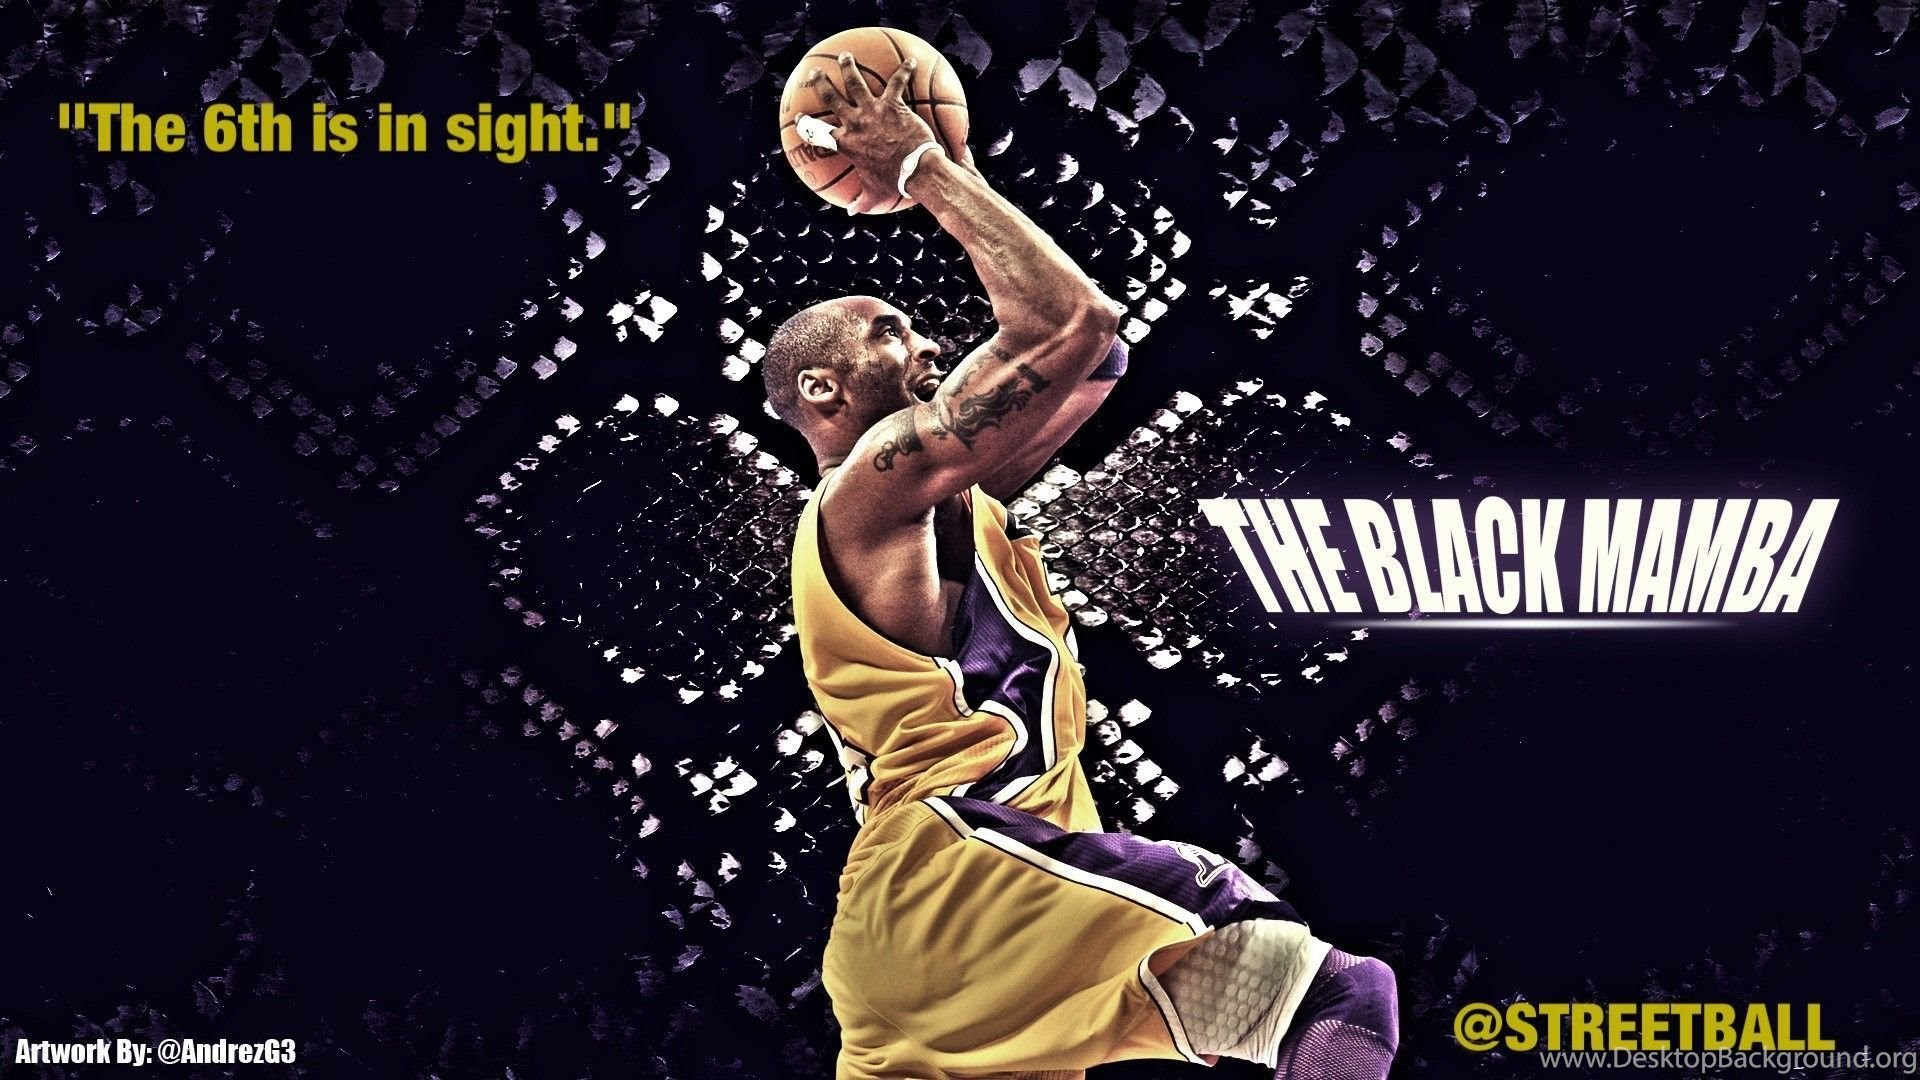 Kobe Bryant Wallpapers Black Mamba 1790173 Desktop Background